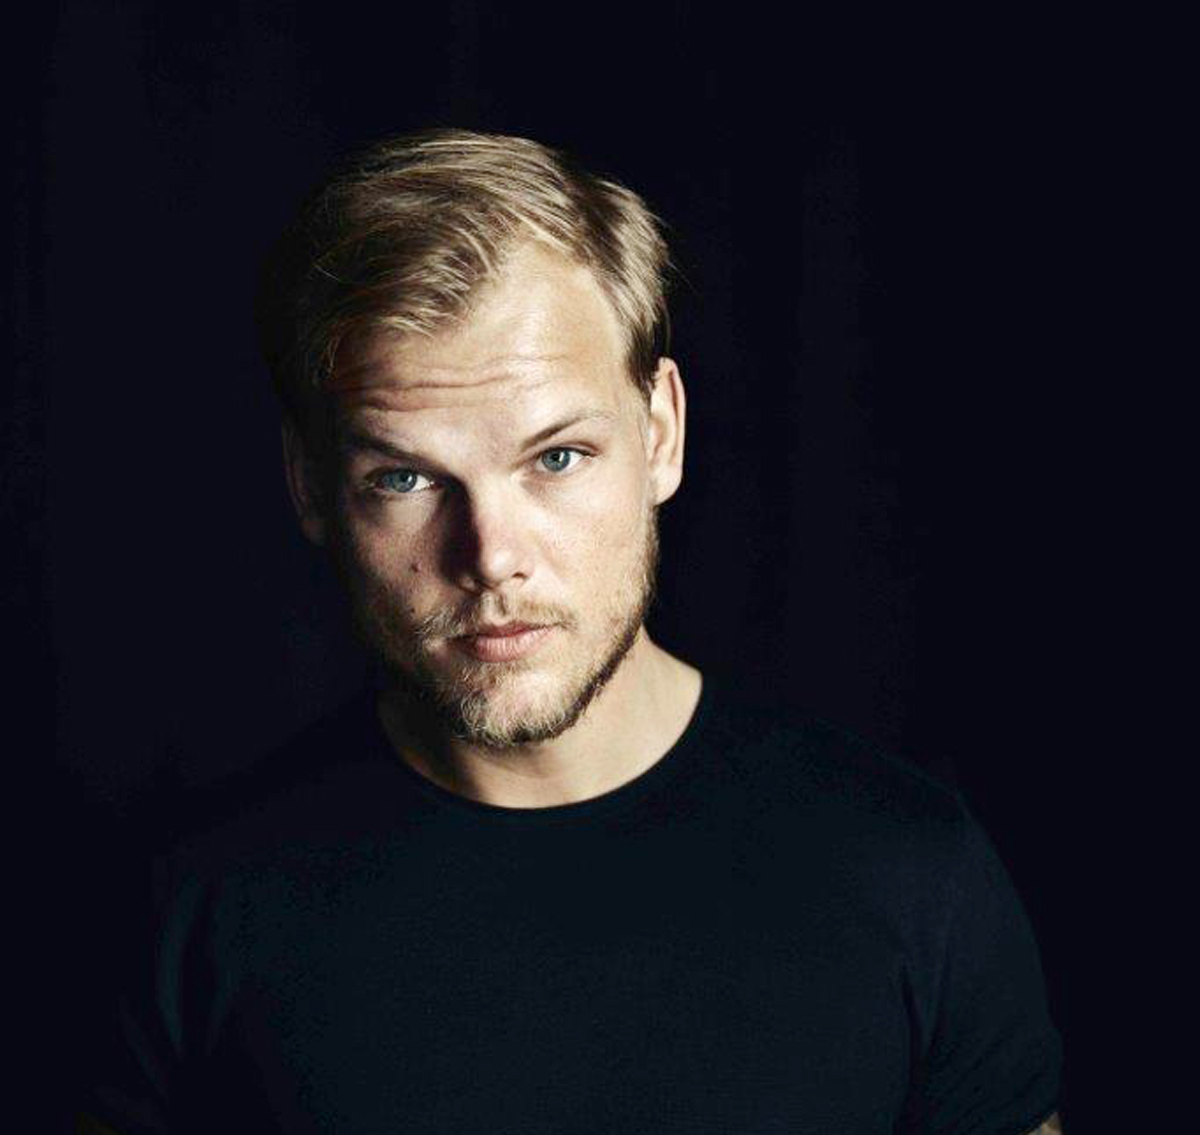 Avicii(アヴィーチー)photo by Sean Eriksson